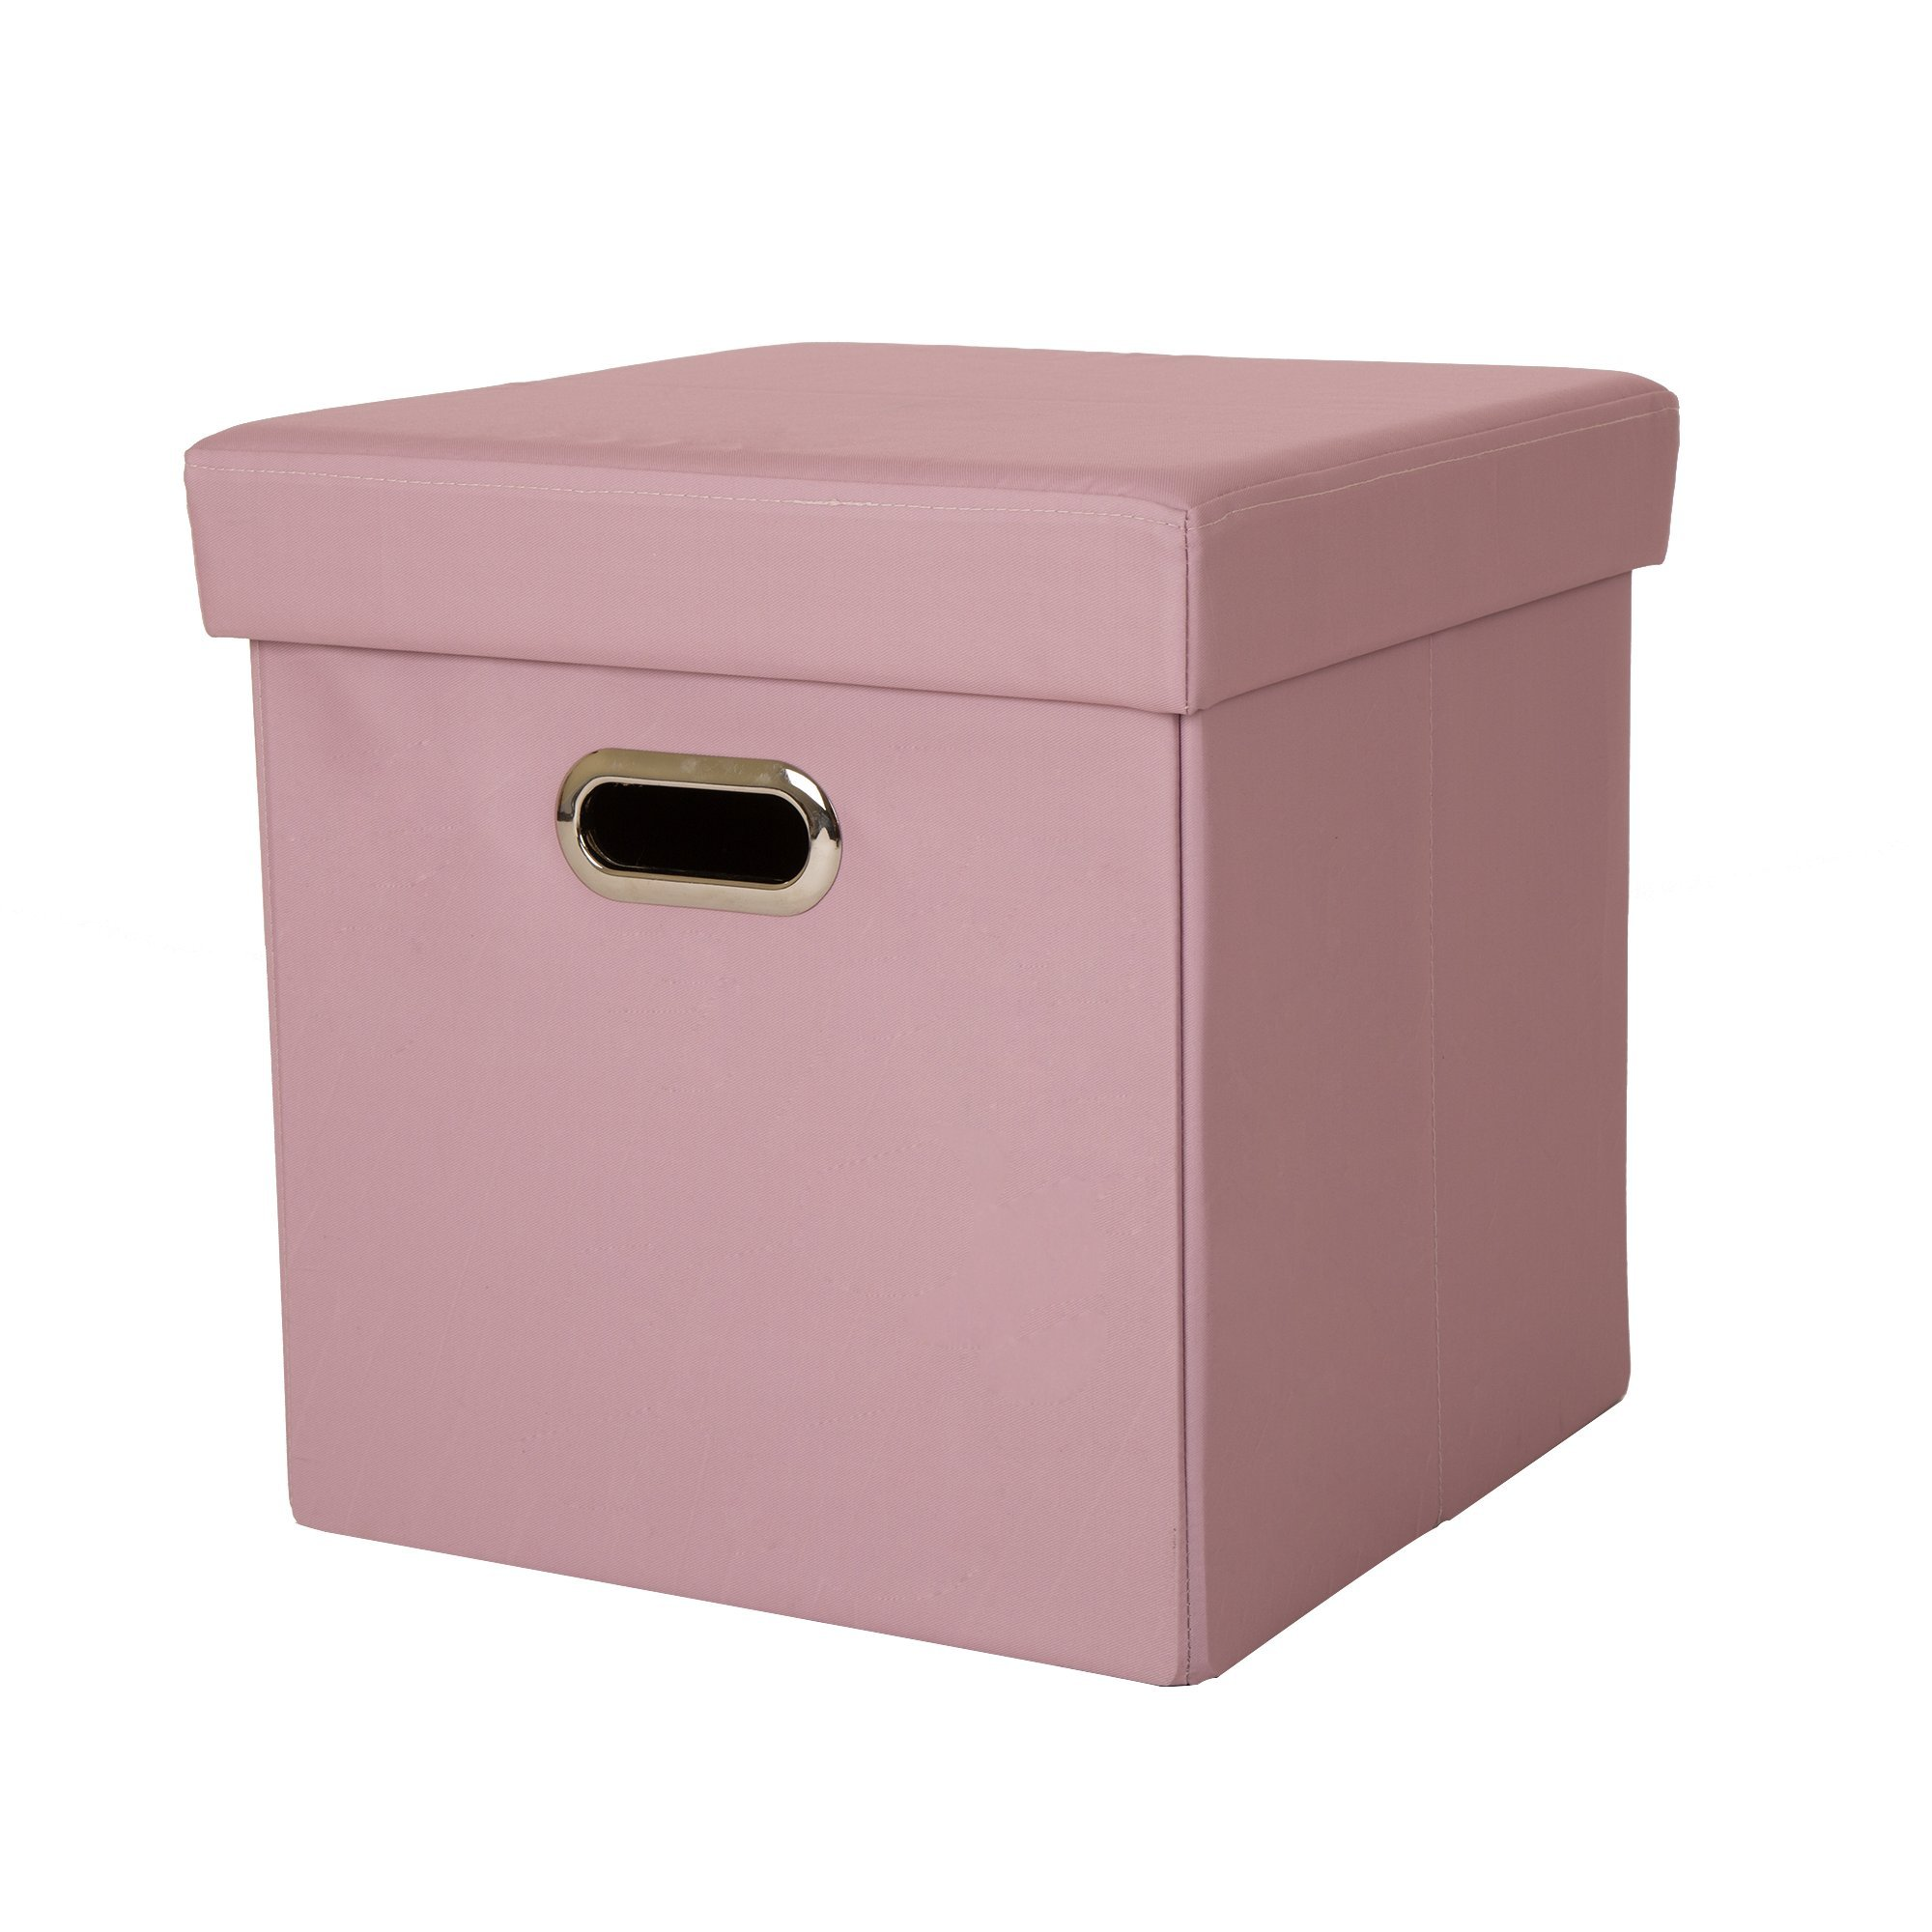 Superieur Get Quotations · Glitzhome Foldable Oxford Cube Storage Ottoman With Padded  Seat Pastel Pink